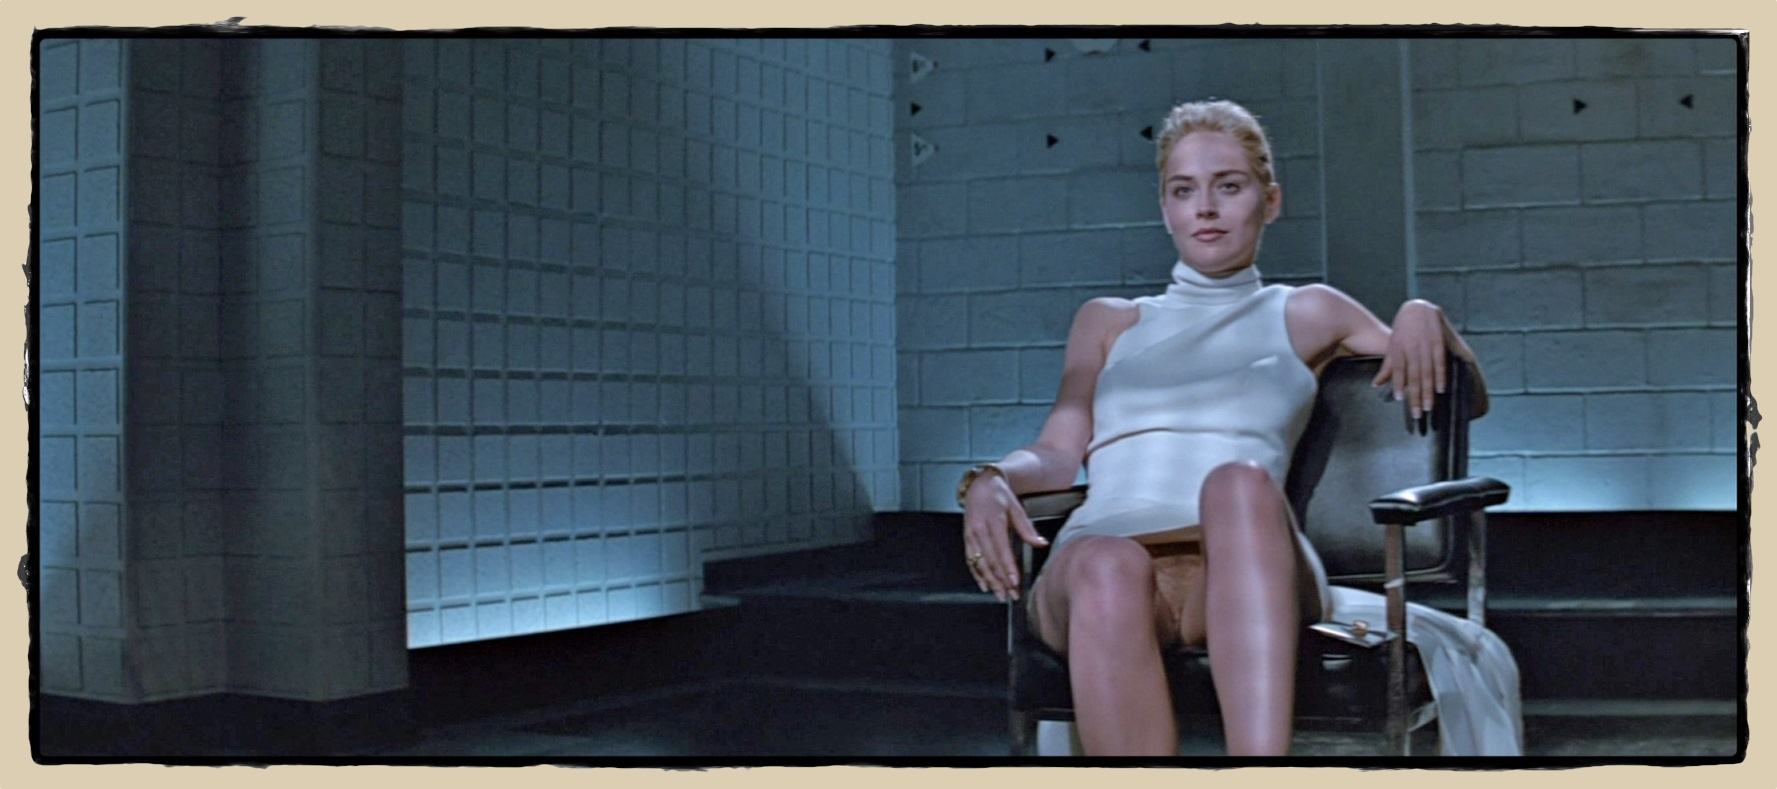 Basic Instinct (1992) Sharon Stone